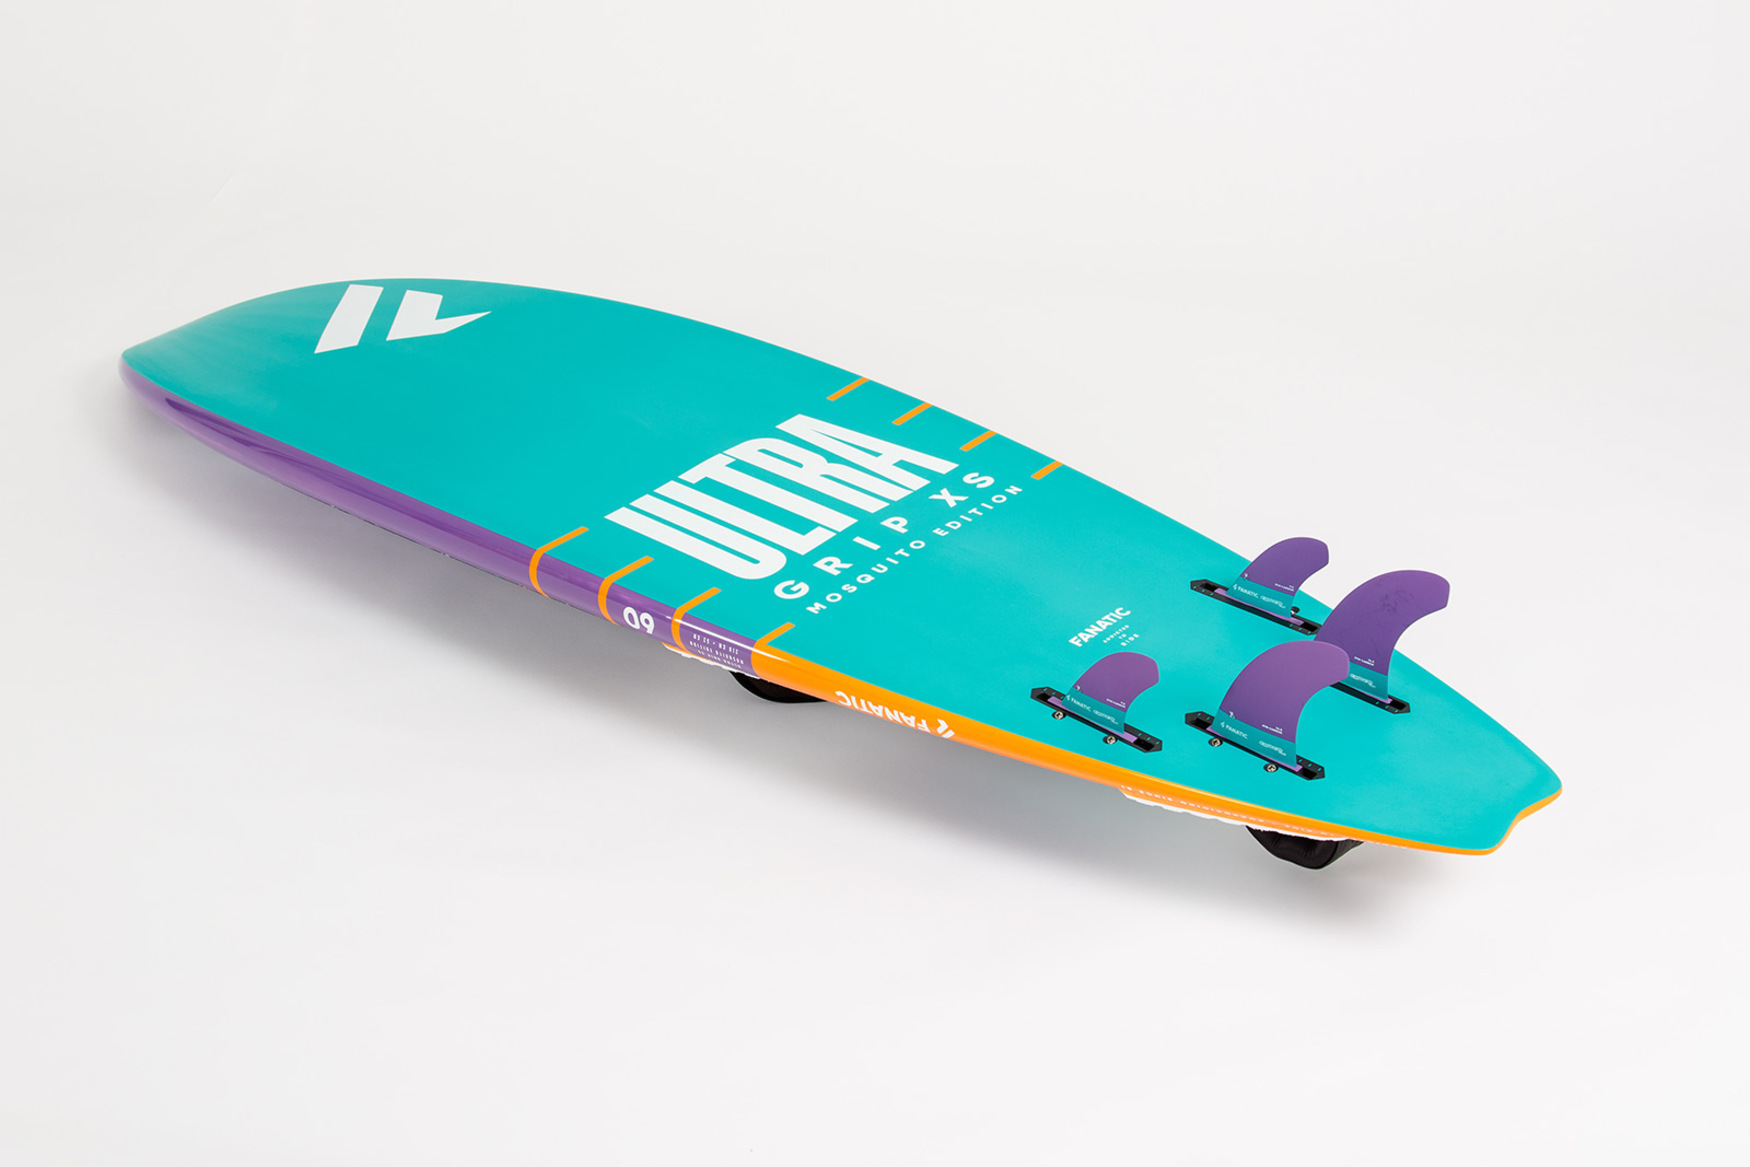 Grip XS - Mosquito Edition